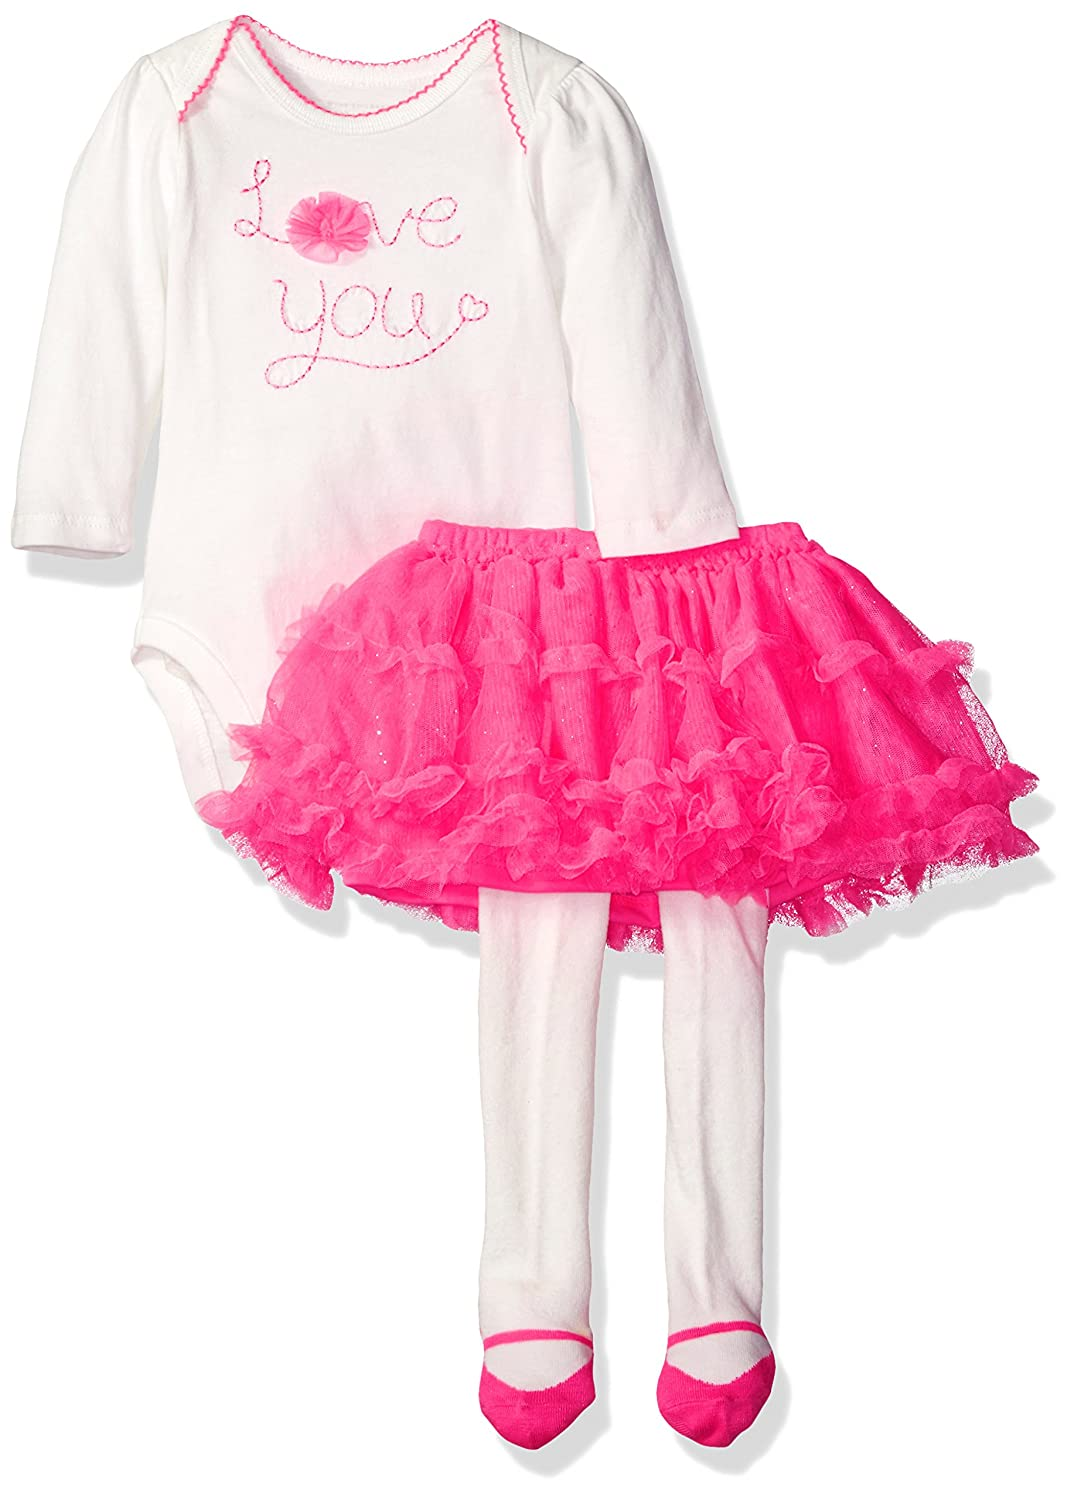 The Childrens Place Baby Girls Top and Skirt Set